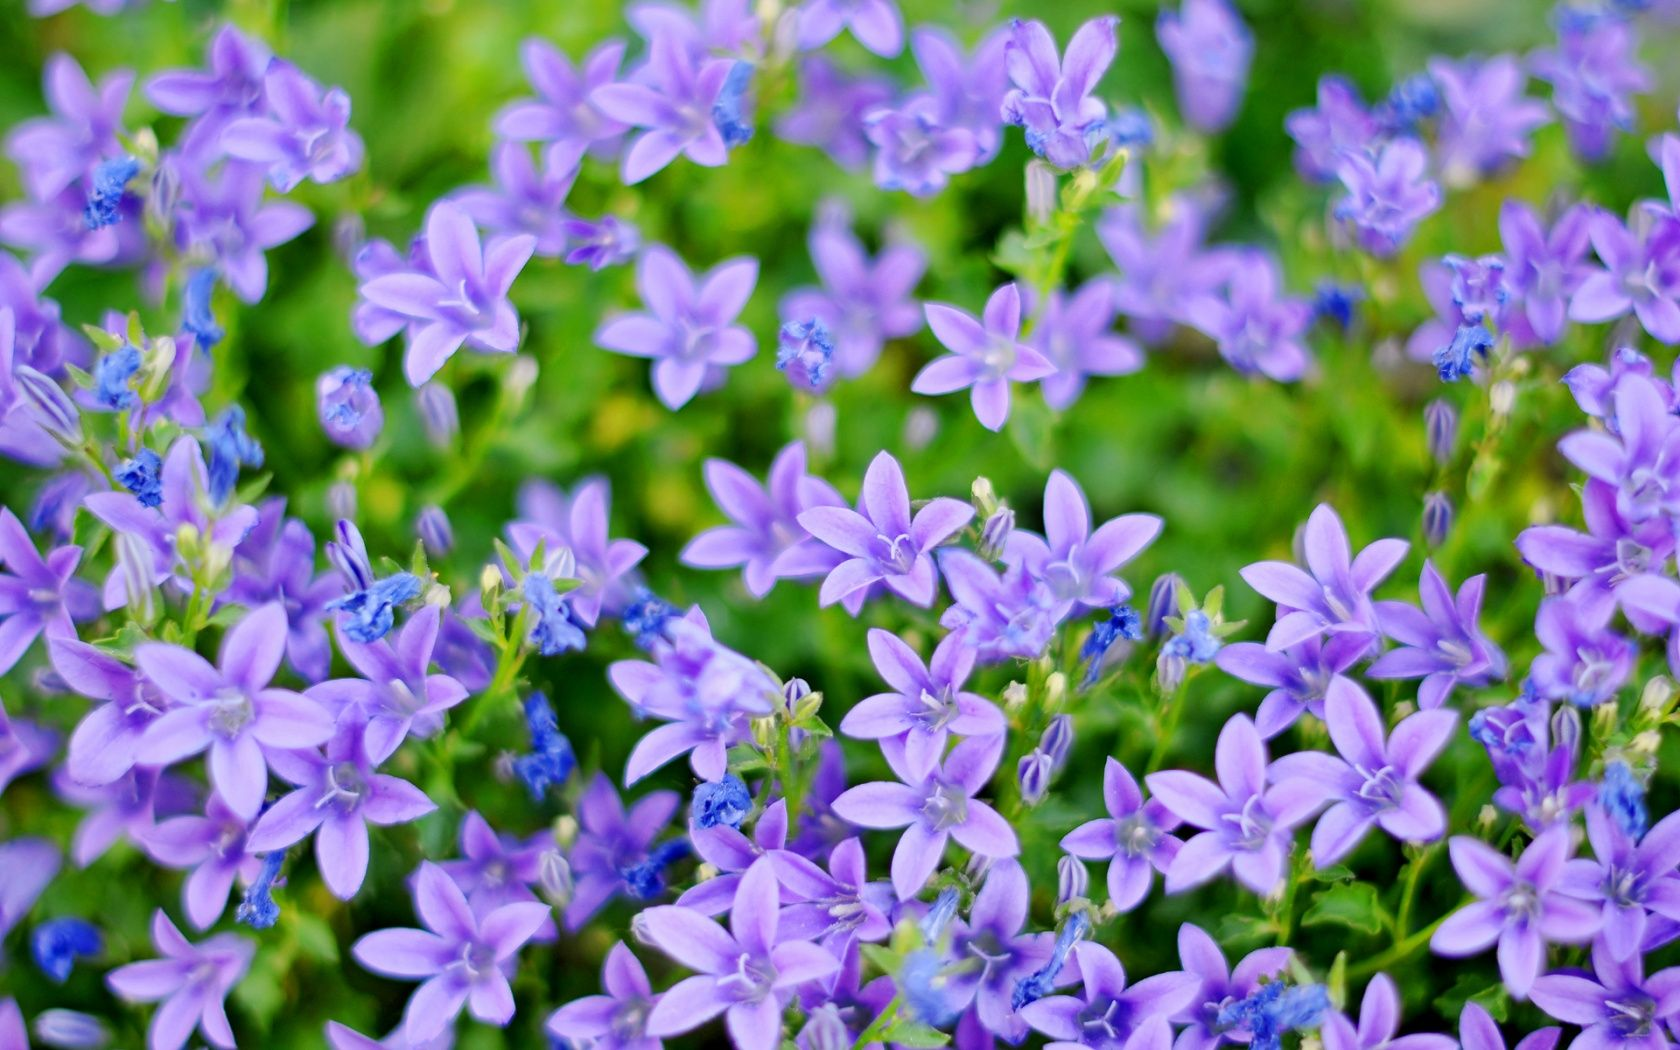 Small Pictures Of Flowers | Small blue and purple flowers 1680x1050 ...